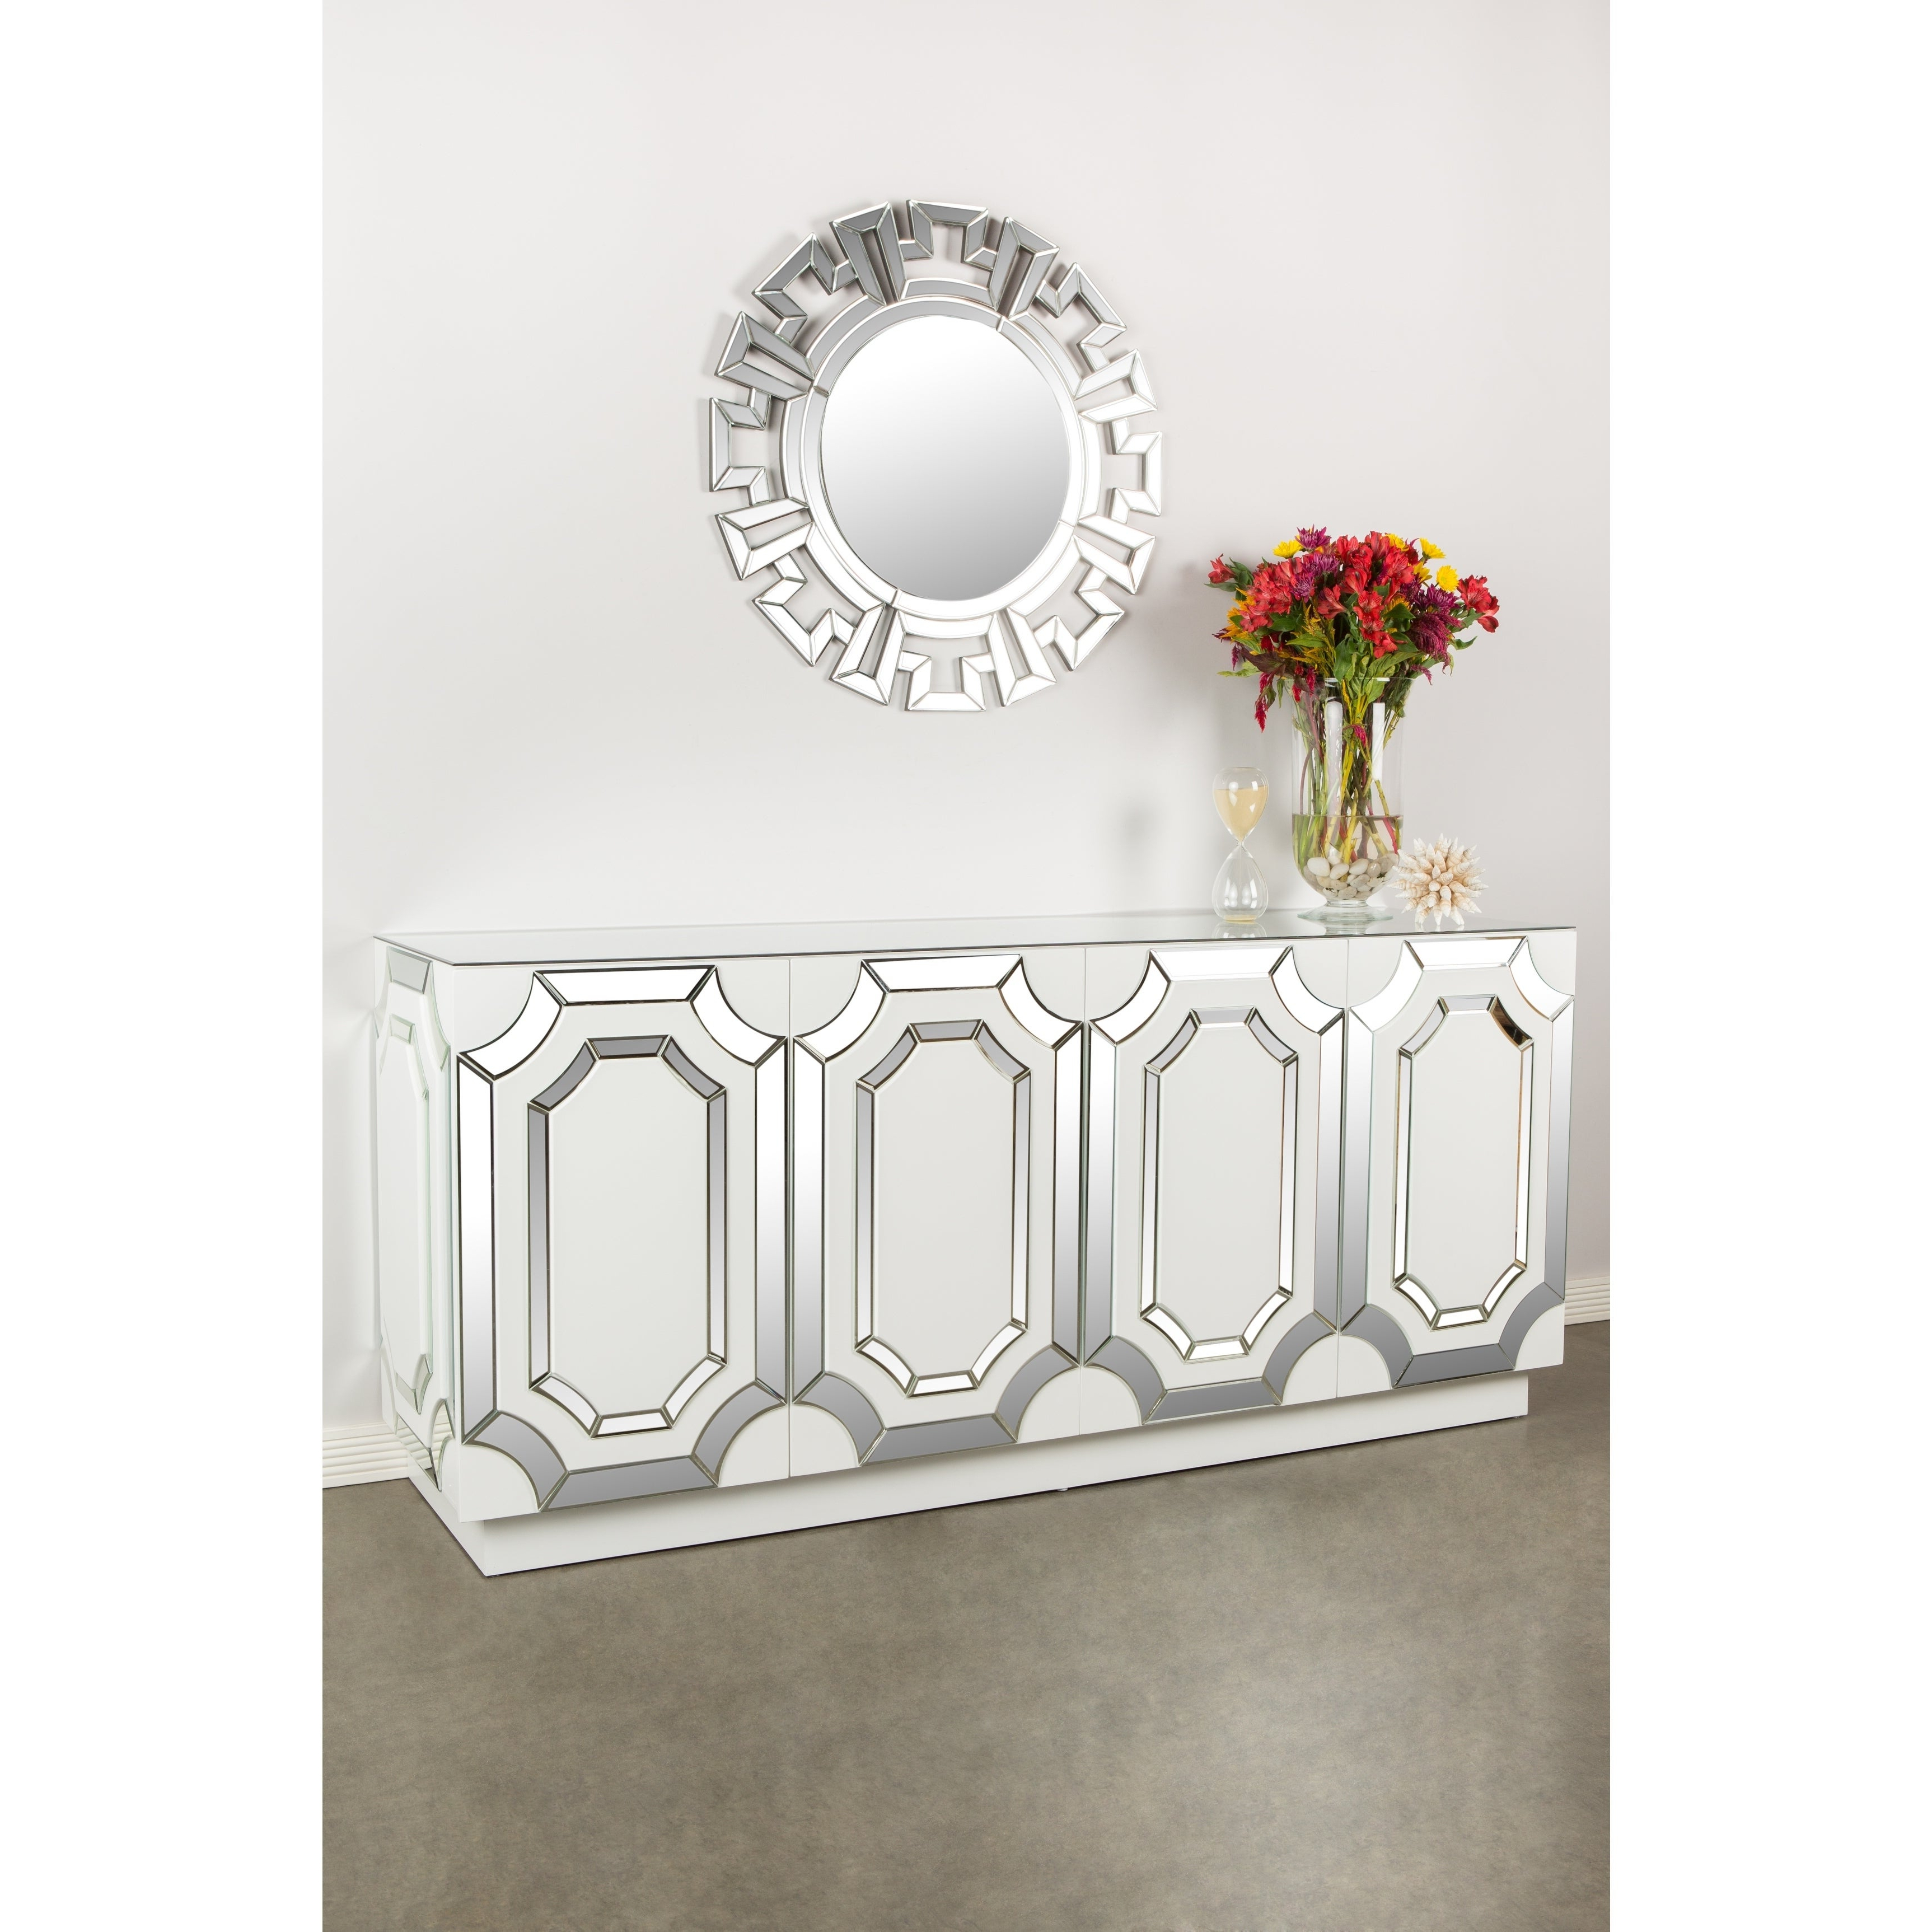 Statementsj Lola Sideboard, 32 Inch Tall Pertaining To Lola Sideboards (View 16 of 20)